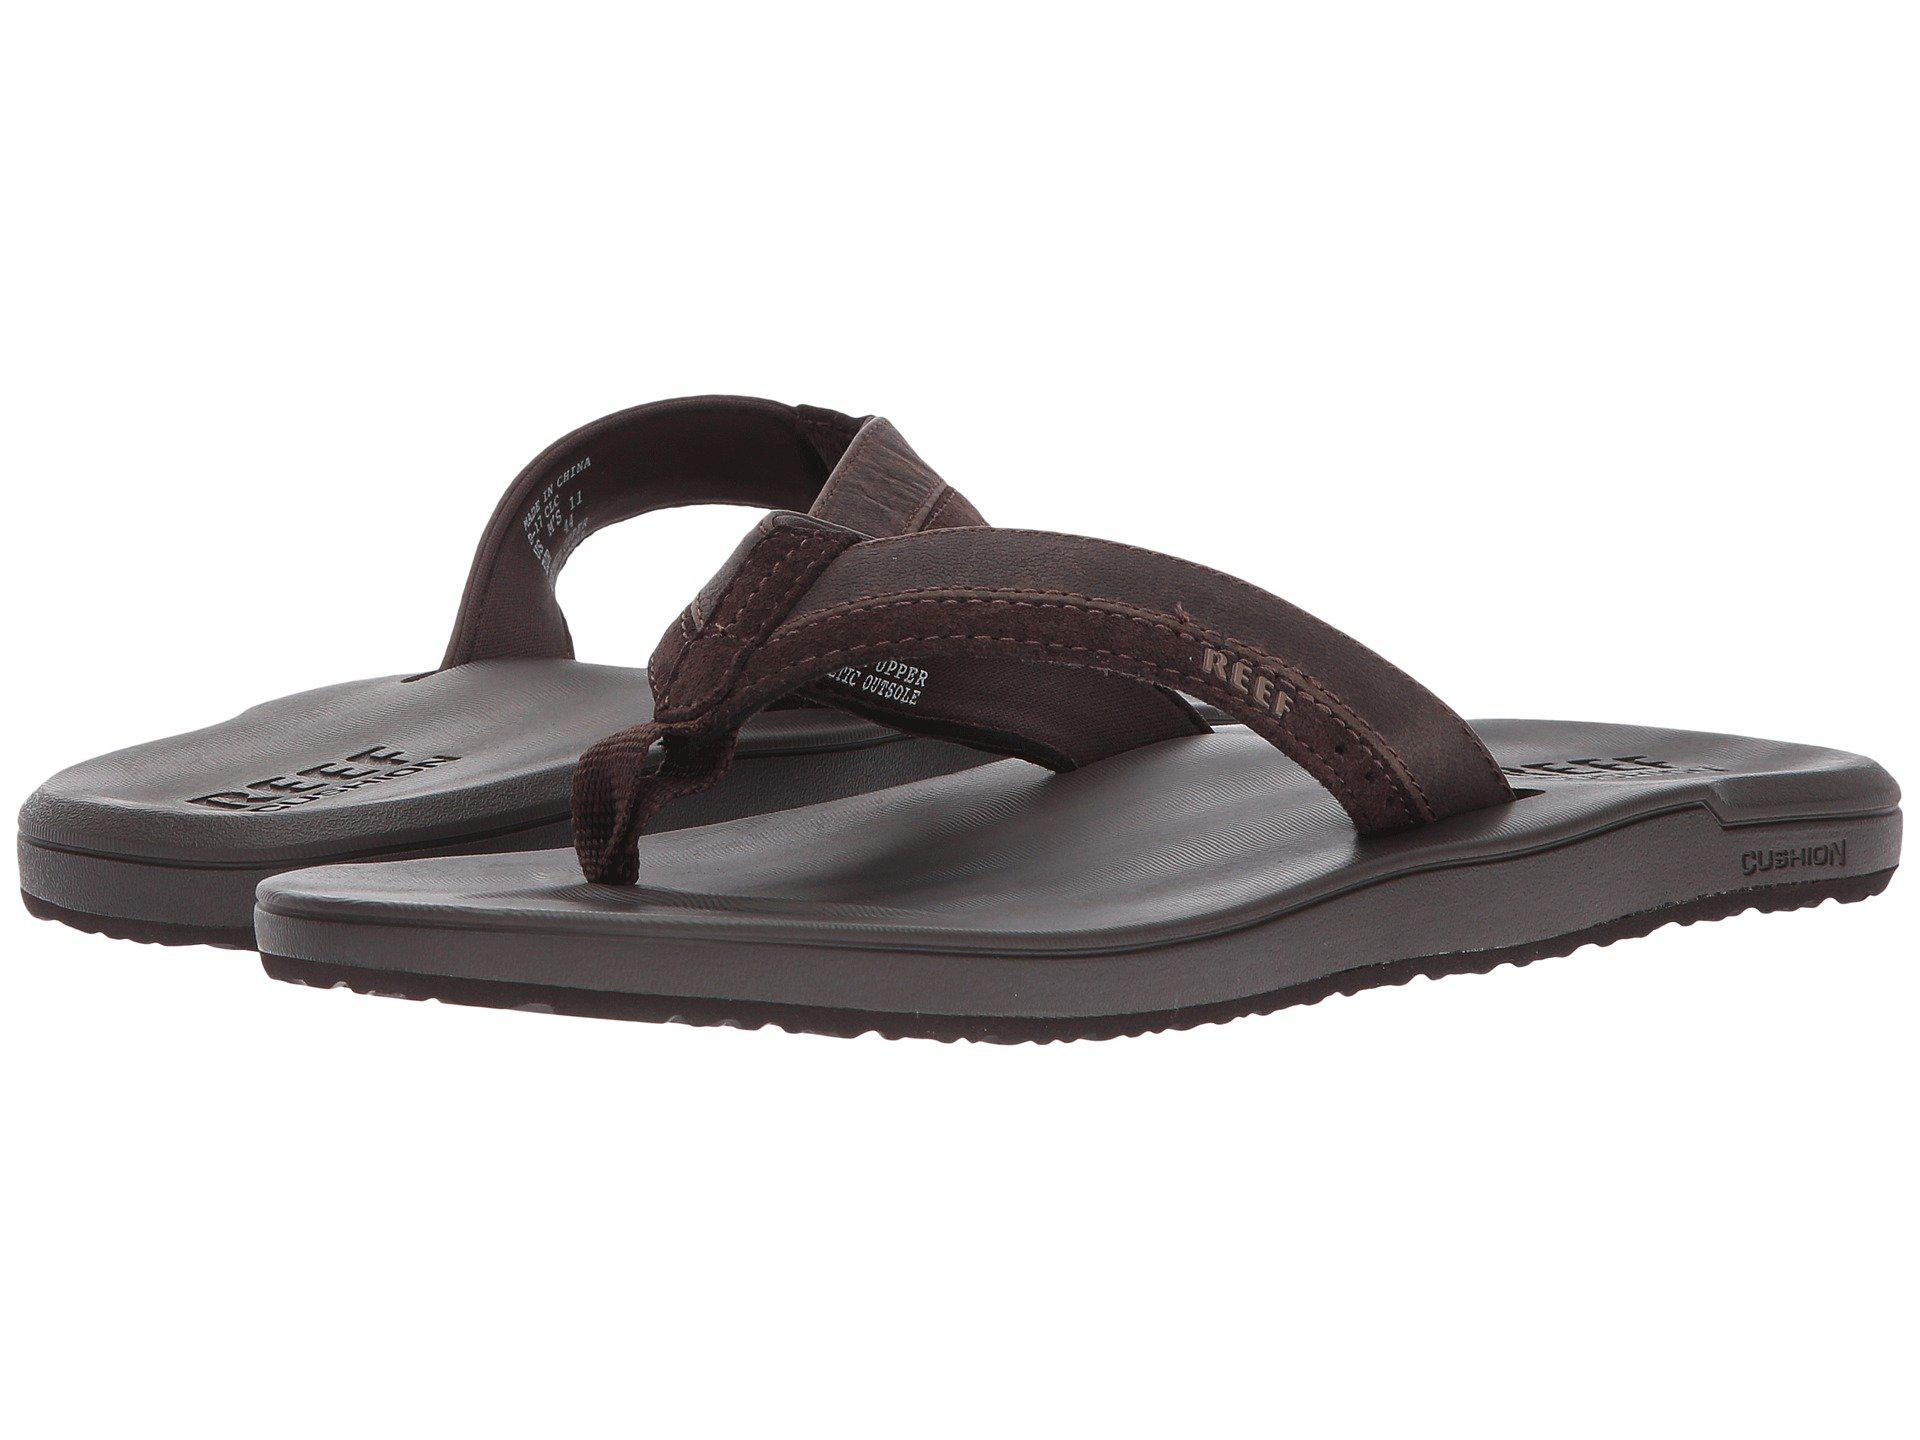 480ac5bf1214 Lyst - Reef Contour Cushion Le (brown) Men s Sandals in Brown for Men